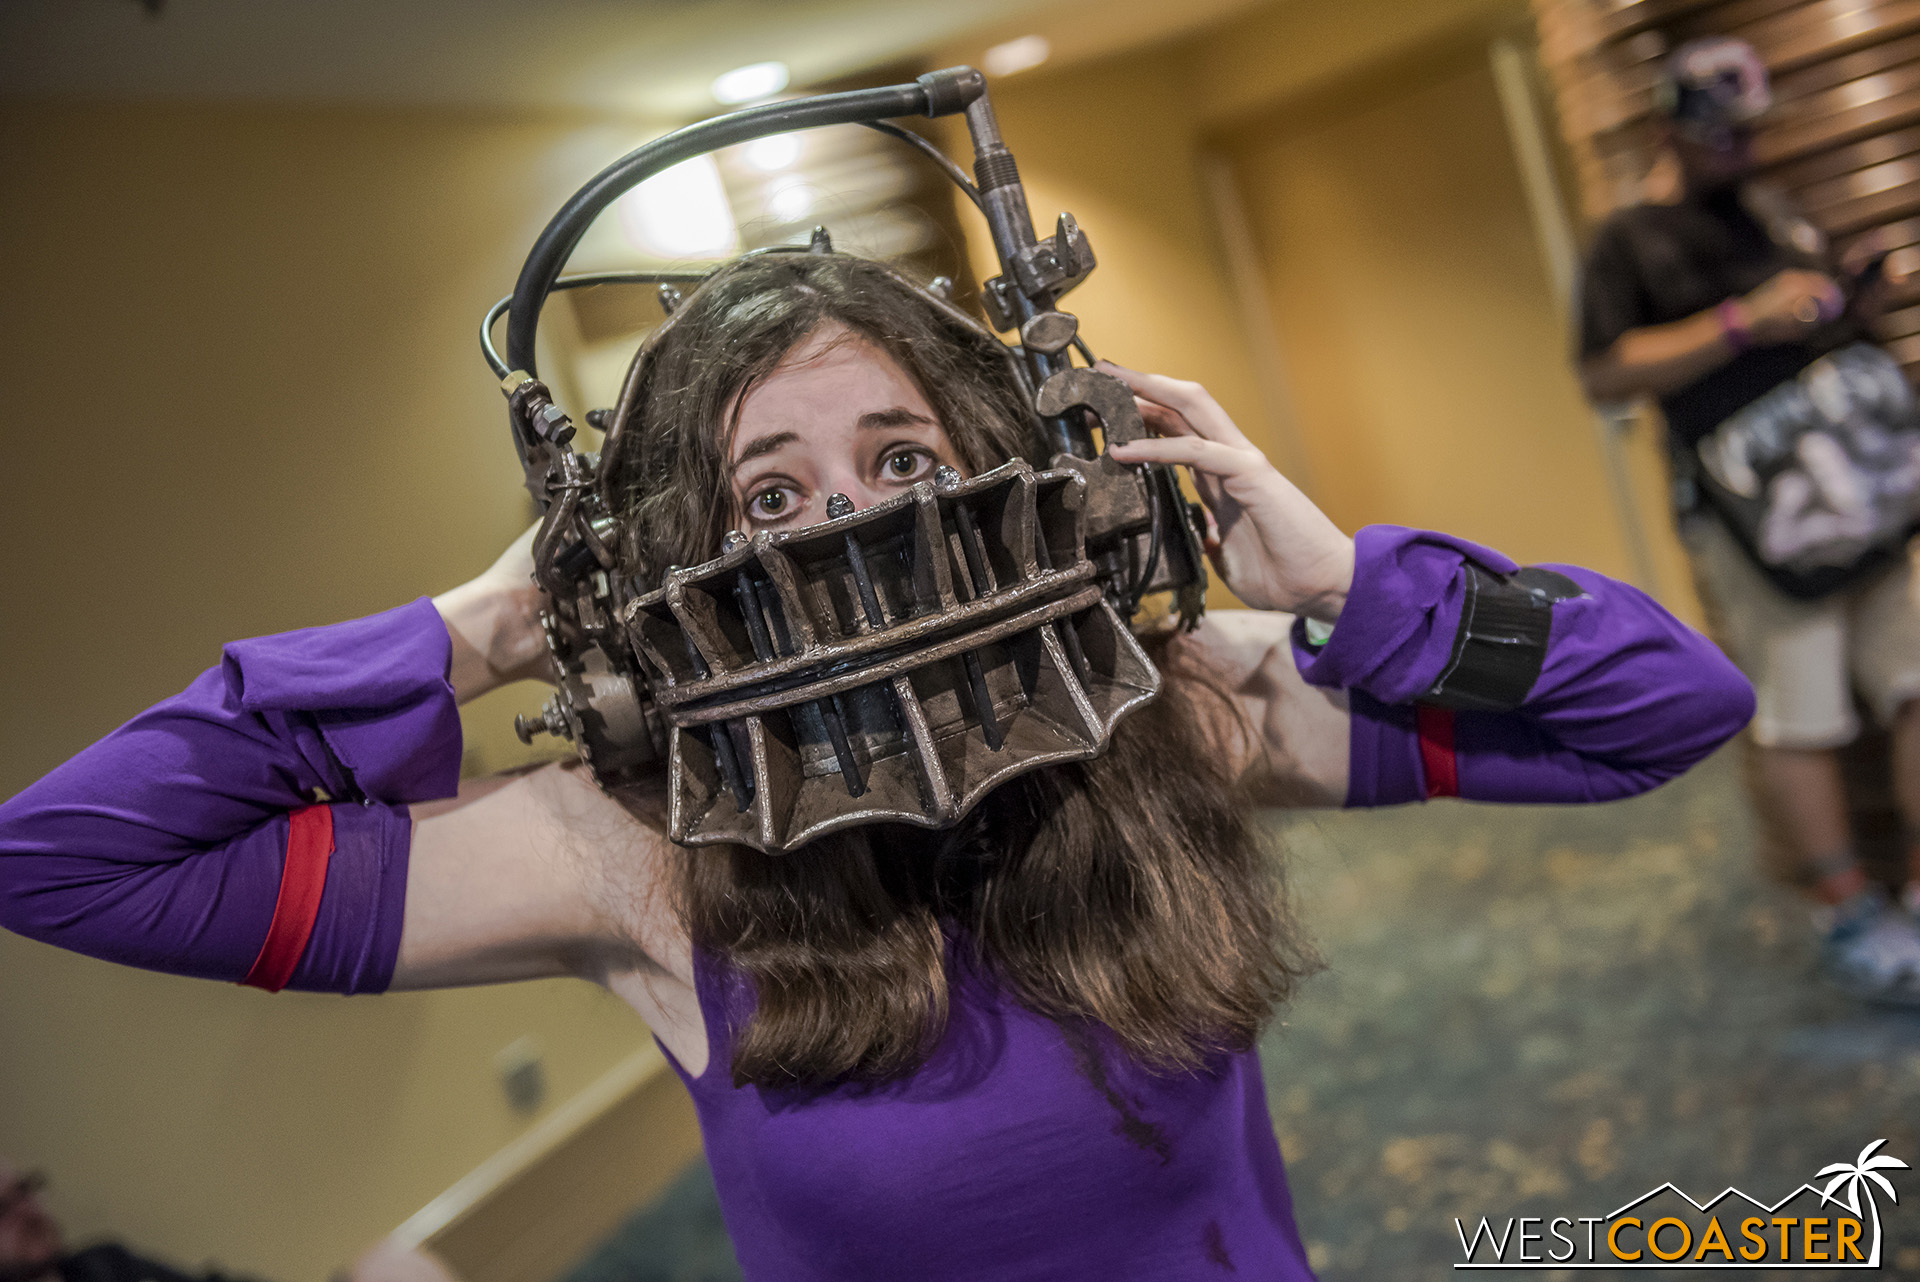 The detail into this reverse bear trap from  Saw  was impressive!